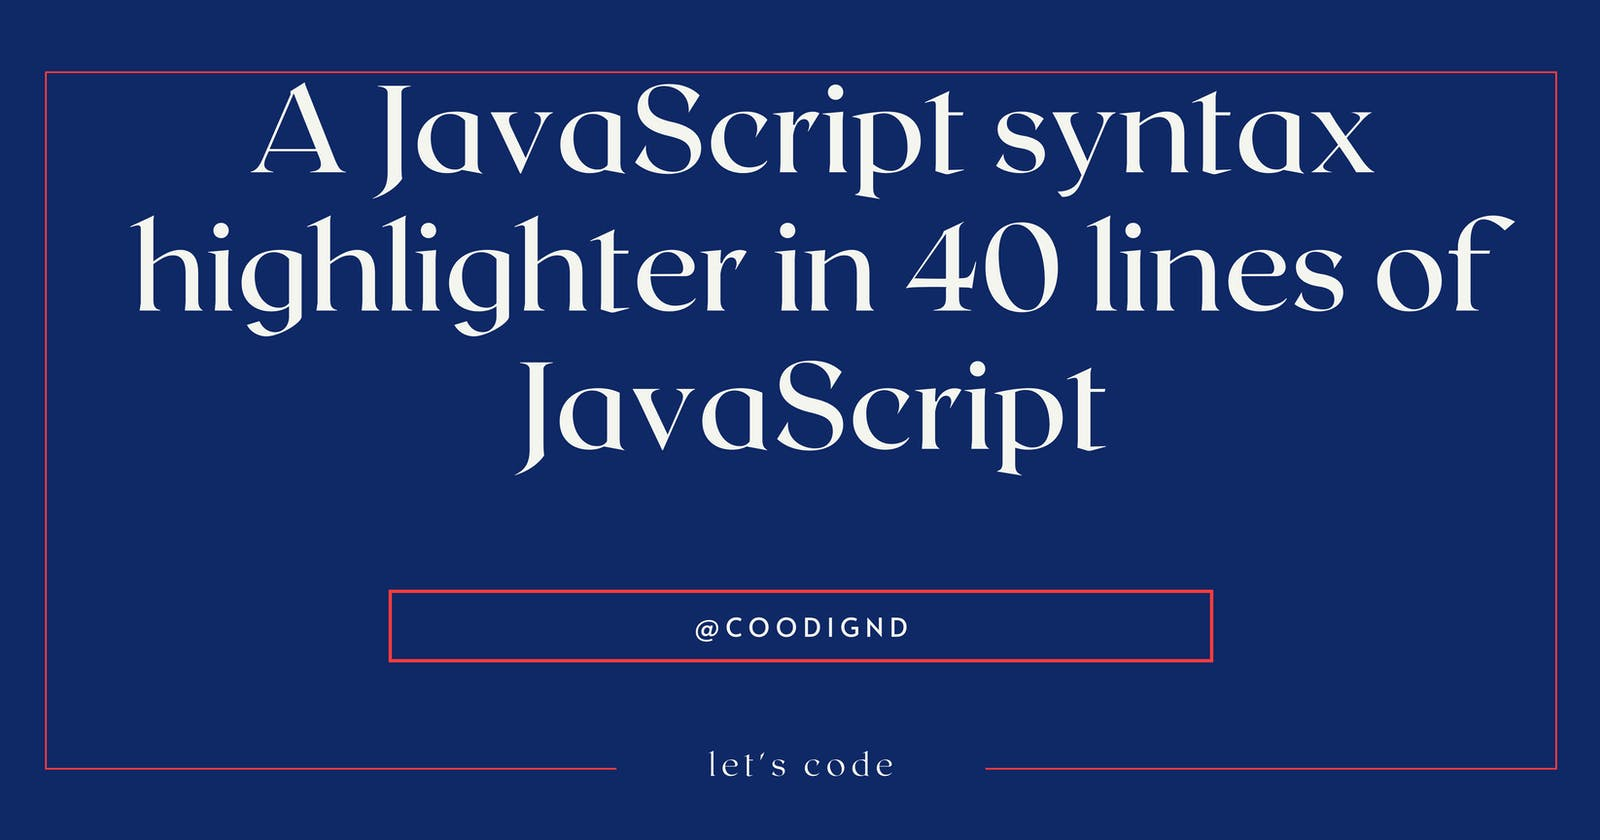 A JavaScript syntax highlighter in 40 lines of JavaScript